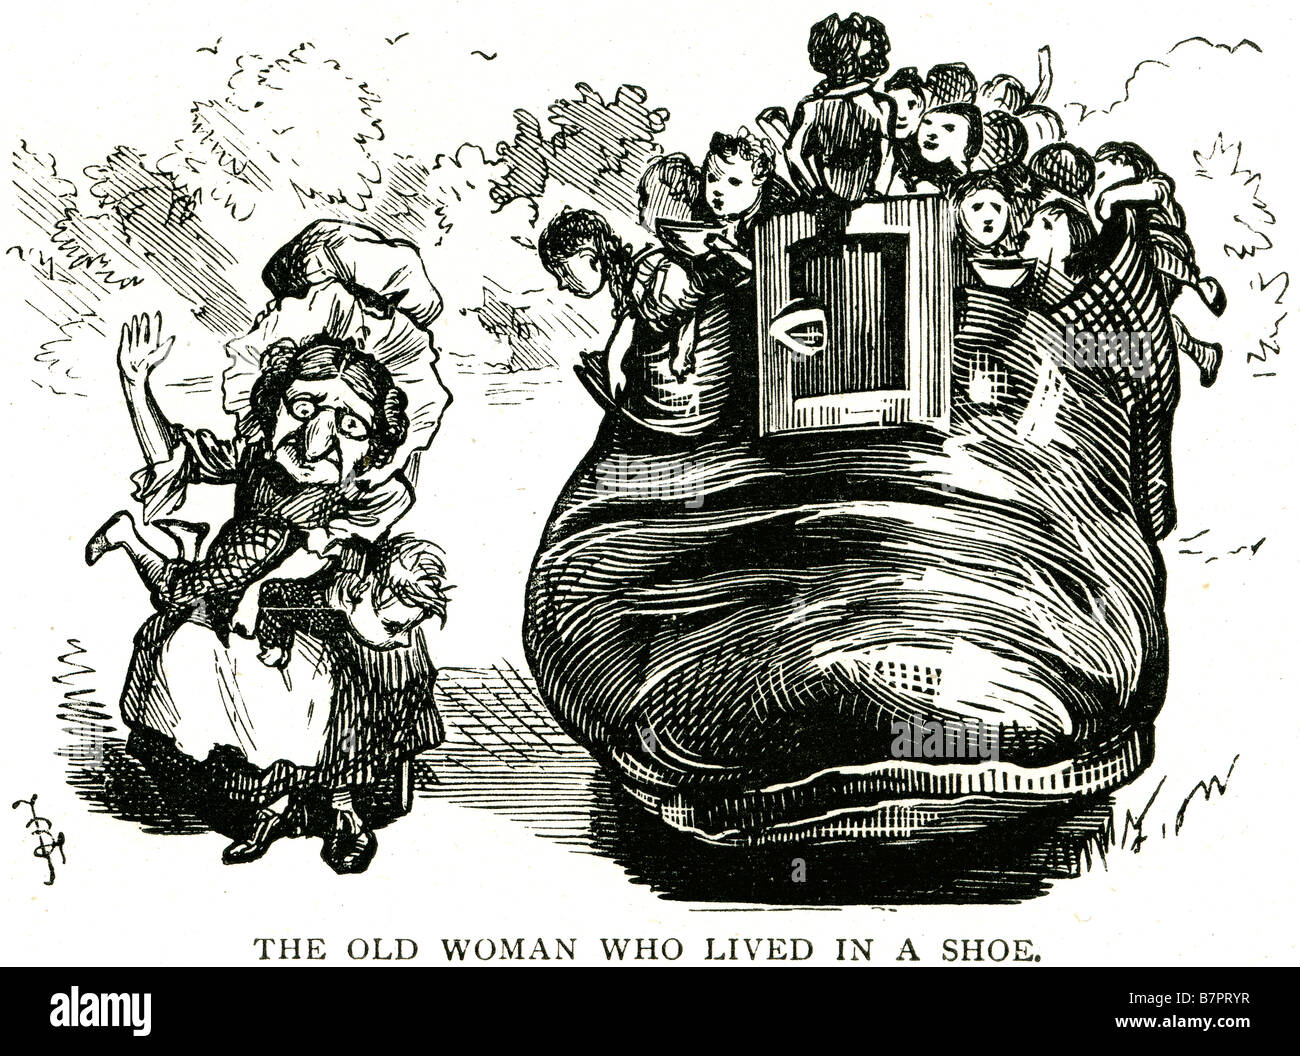 old woman lived shoe Nursery Rhyme 'There Was An Old Woman Who Lived In A Shoe' is a popular nursery rhyme. - Stock Image